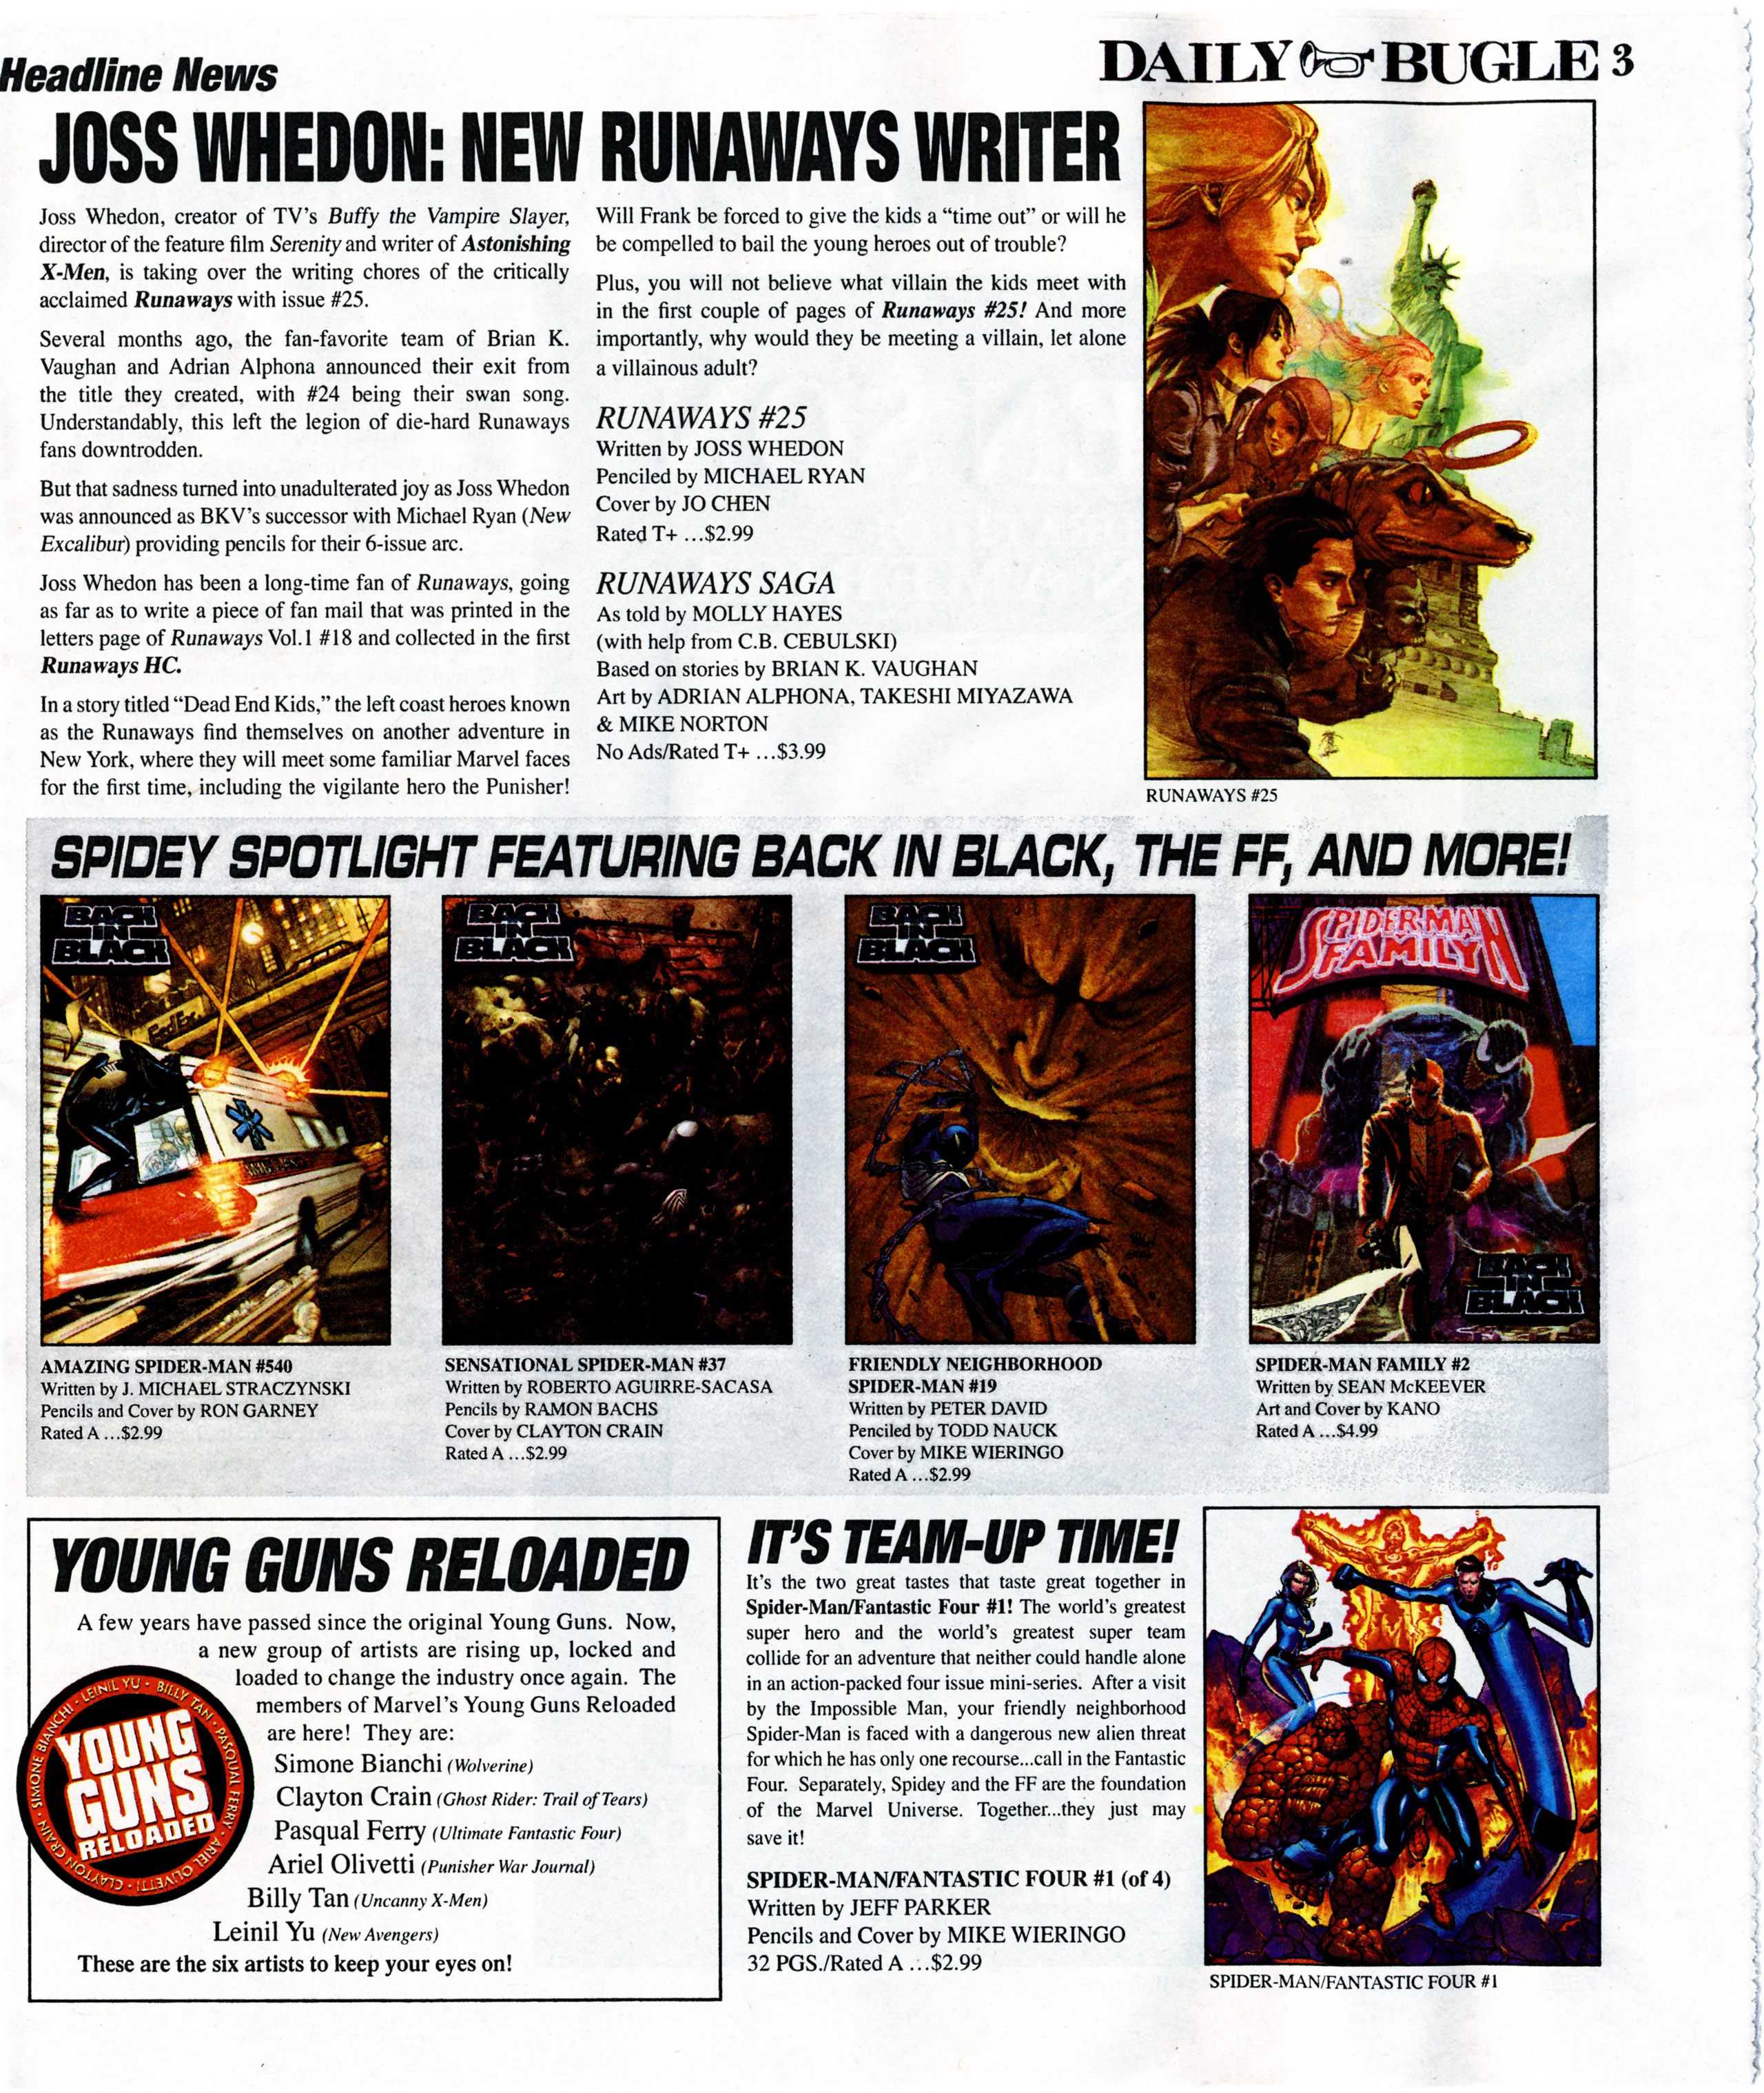 Read online Daily Bugle (2006) comic -  Issue #7 - 4